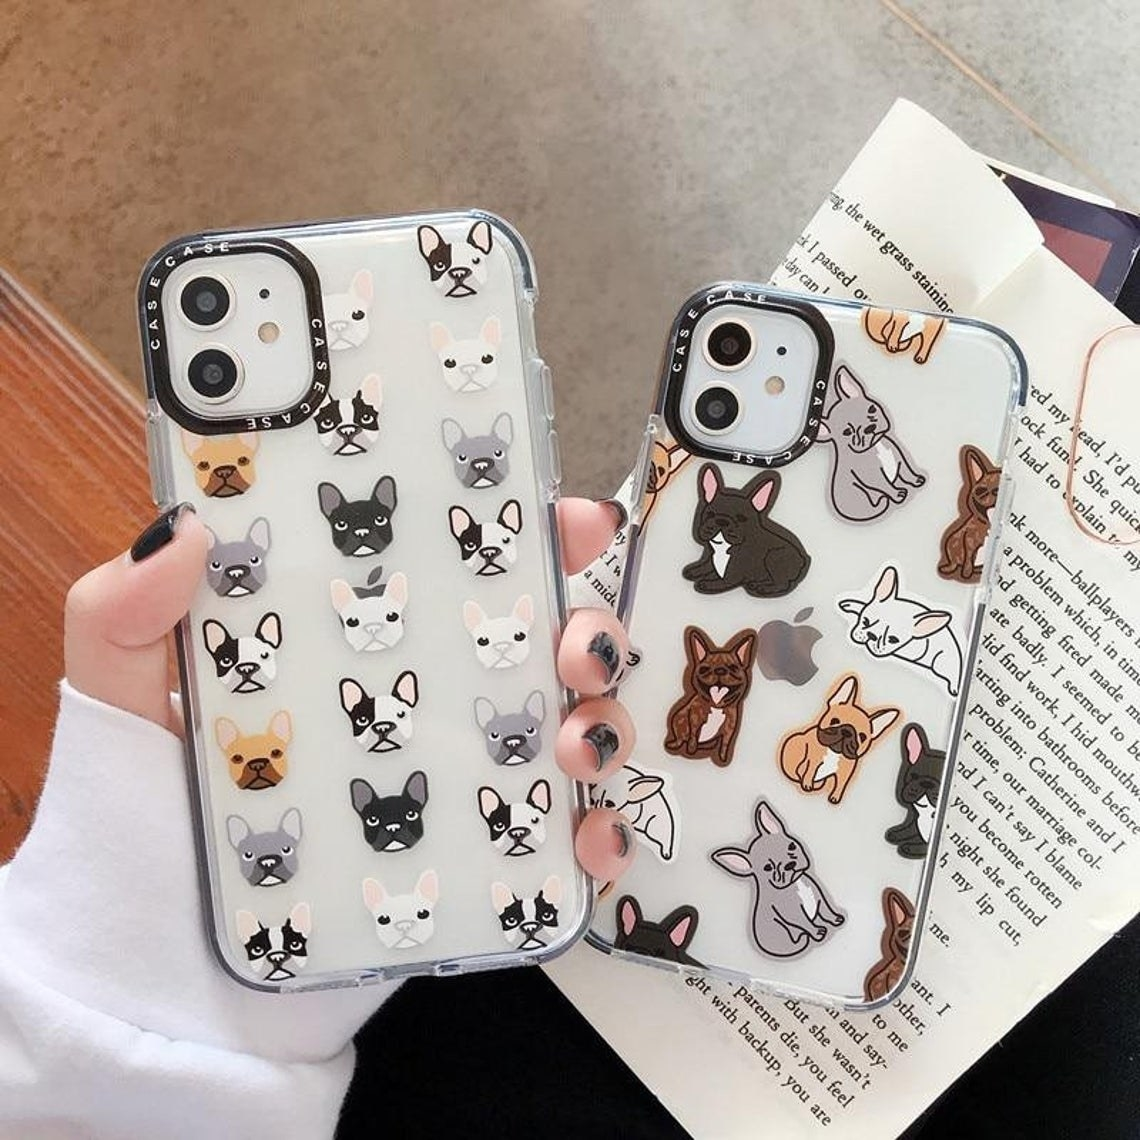 A person holding two Frenchie phone cases